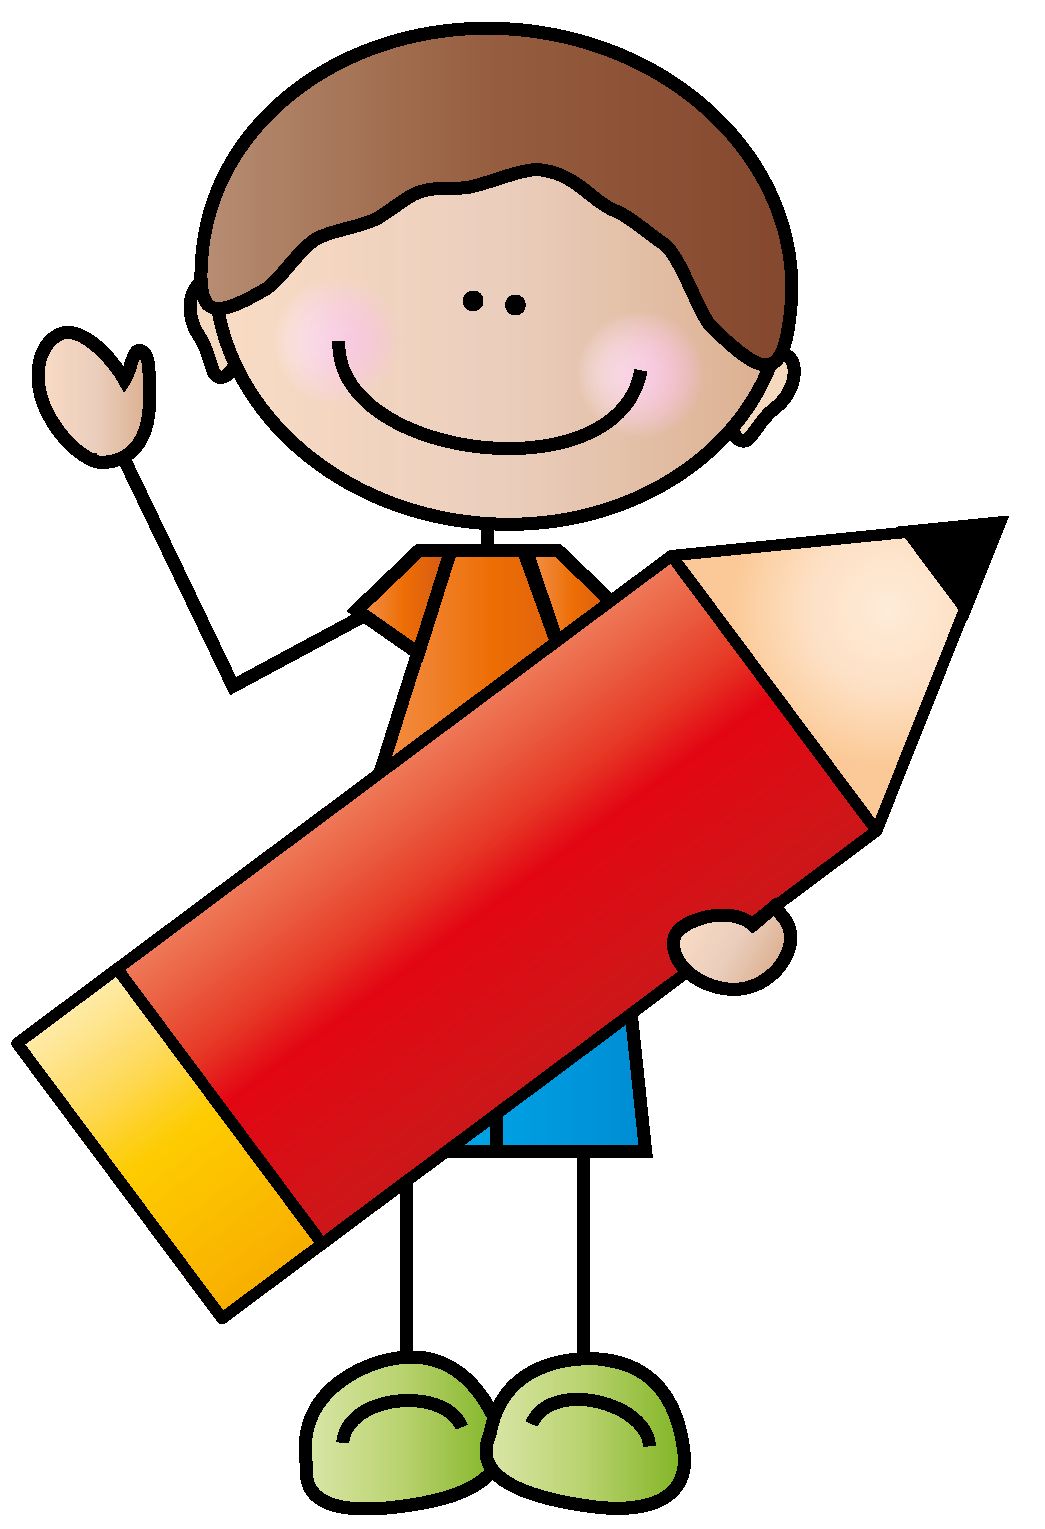 Clipart teacher number. Does this apply to